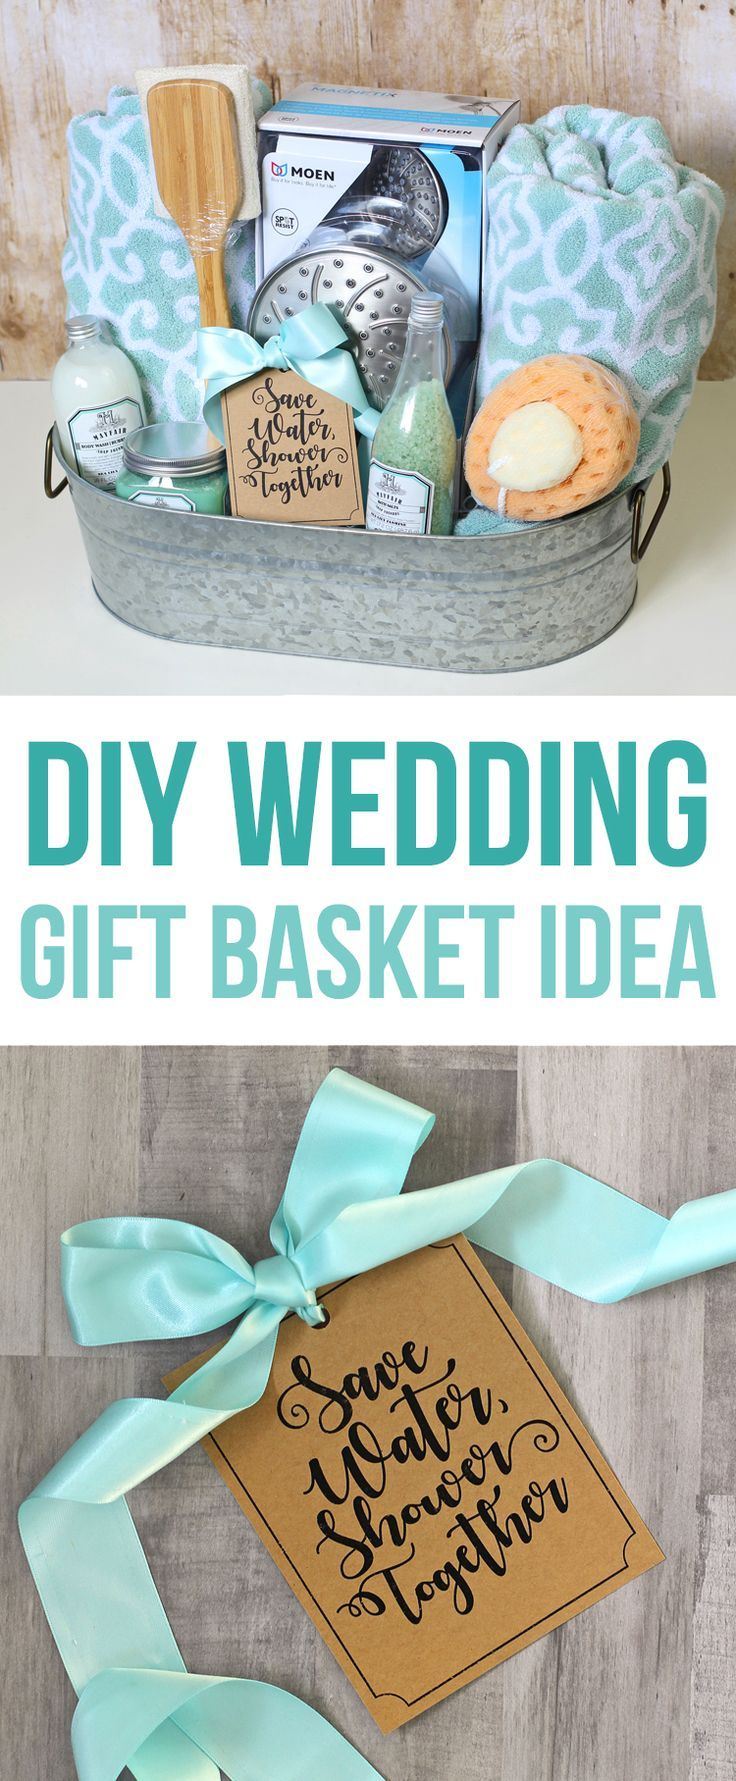 Shower Themed DIY Wedding Gift Basket Idea | IDEAS ...